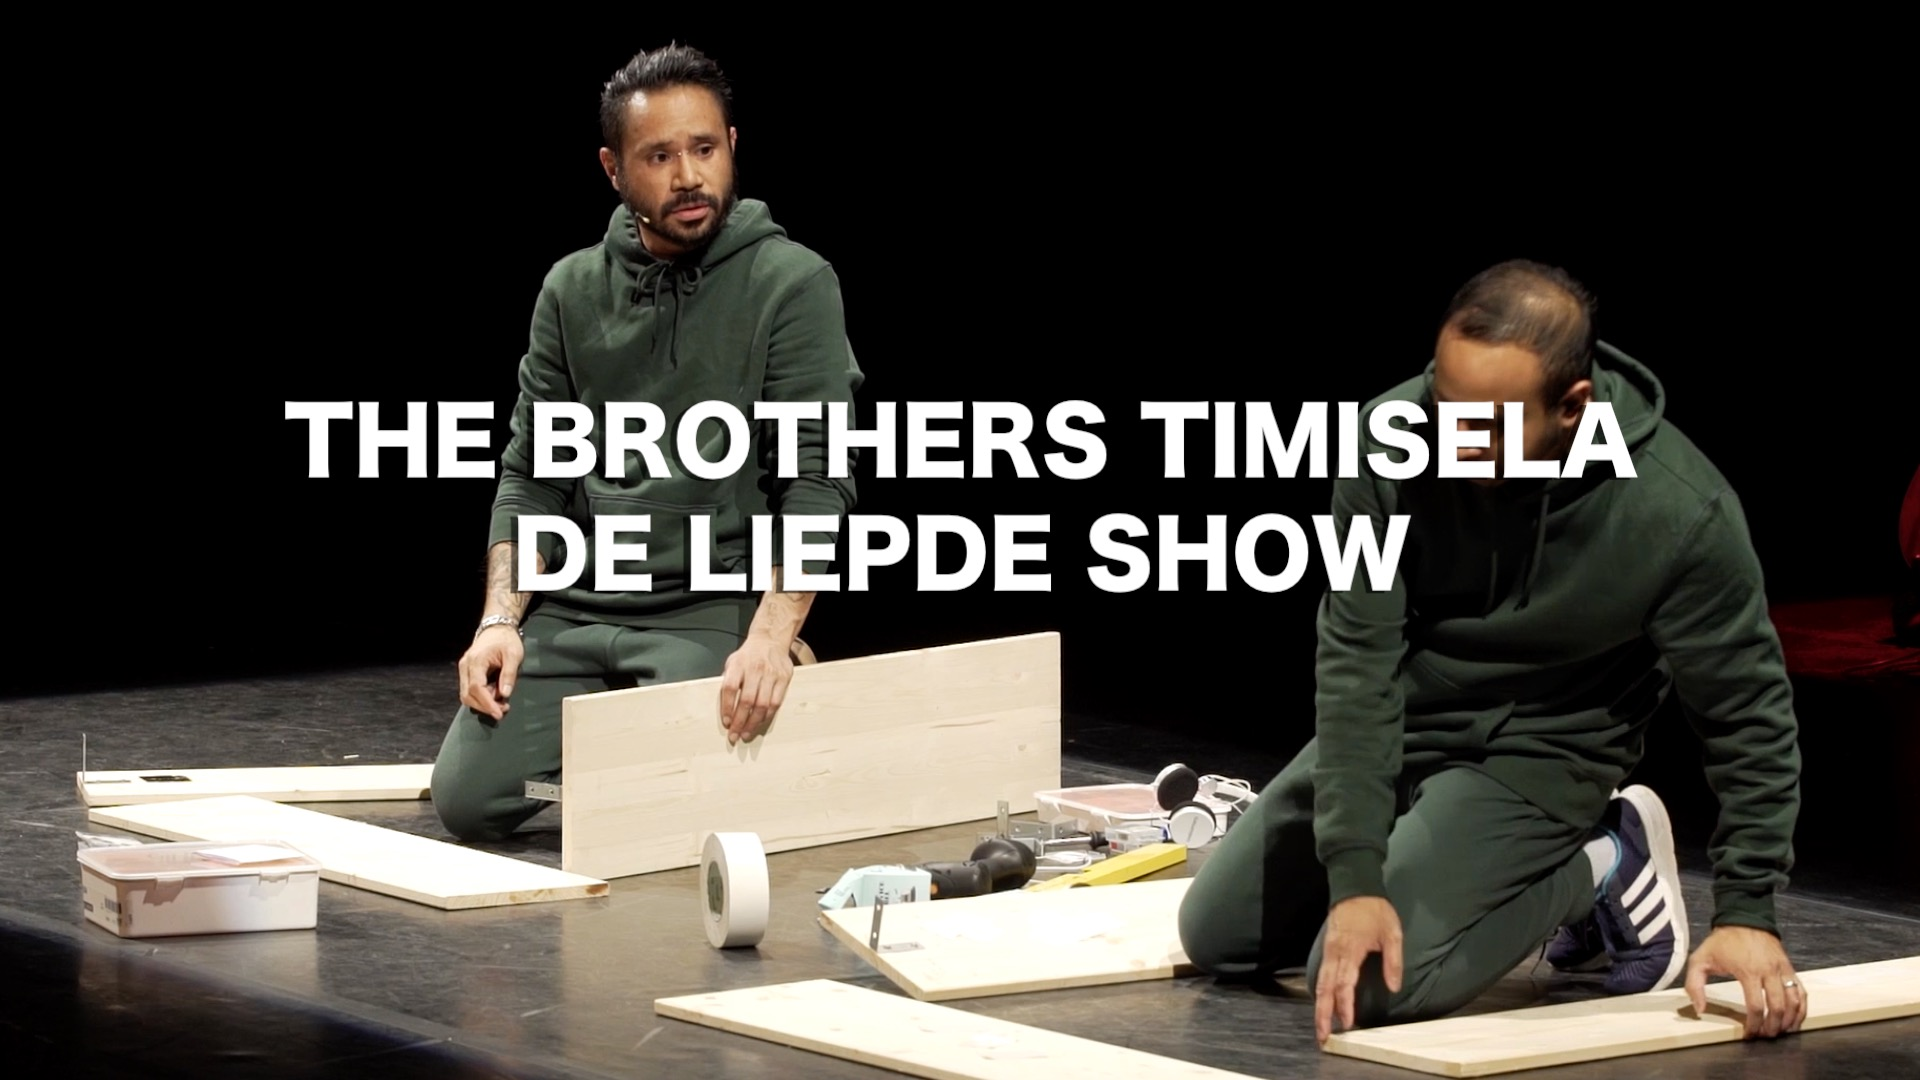 The Brothers Timisela - Liepde